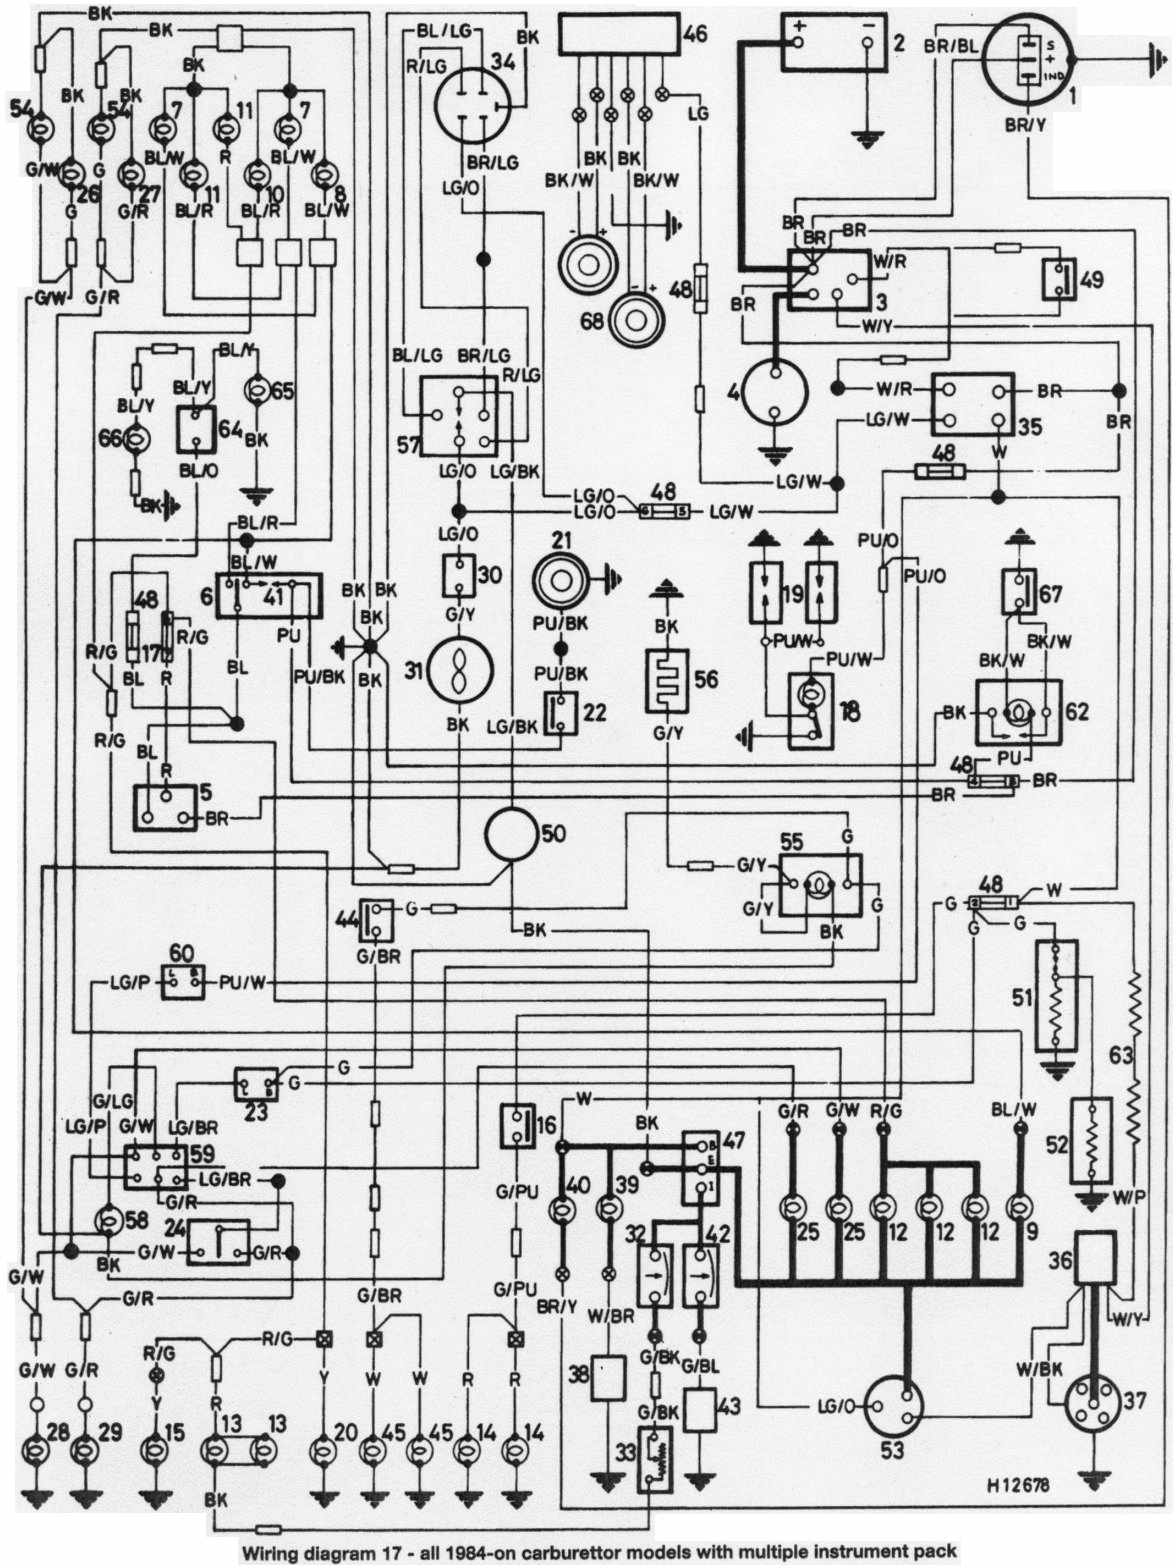 wiring diagram of 1984 onwards all mini series with multiple instrument pack morris minor wiring diagram dolgular com austin healey sprite wiring diagram at virtualis.co